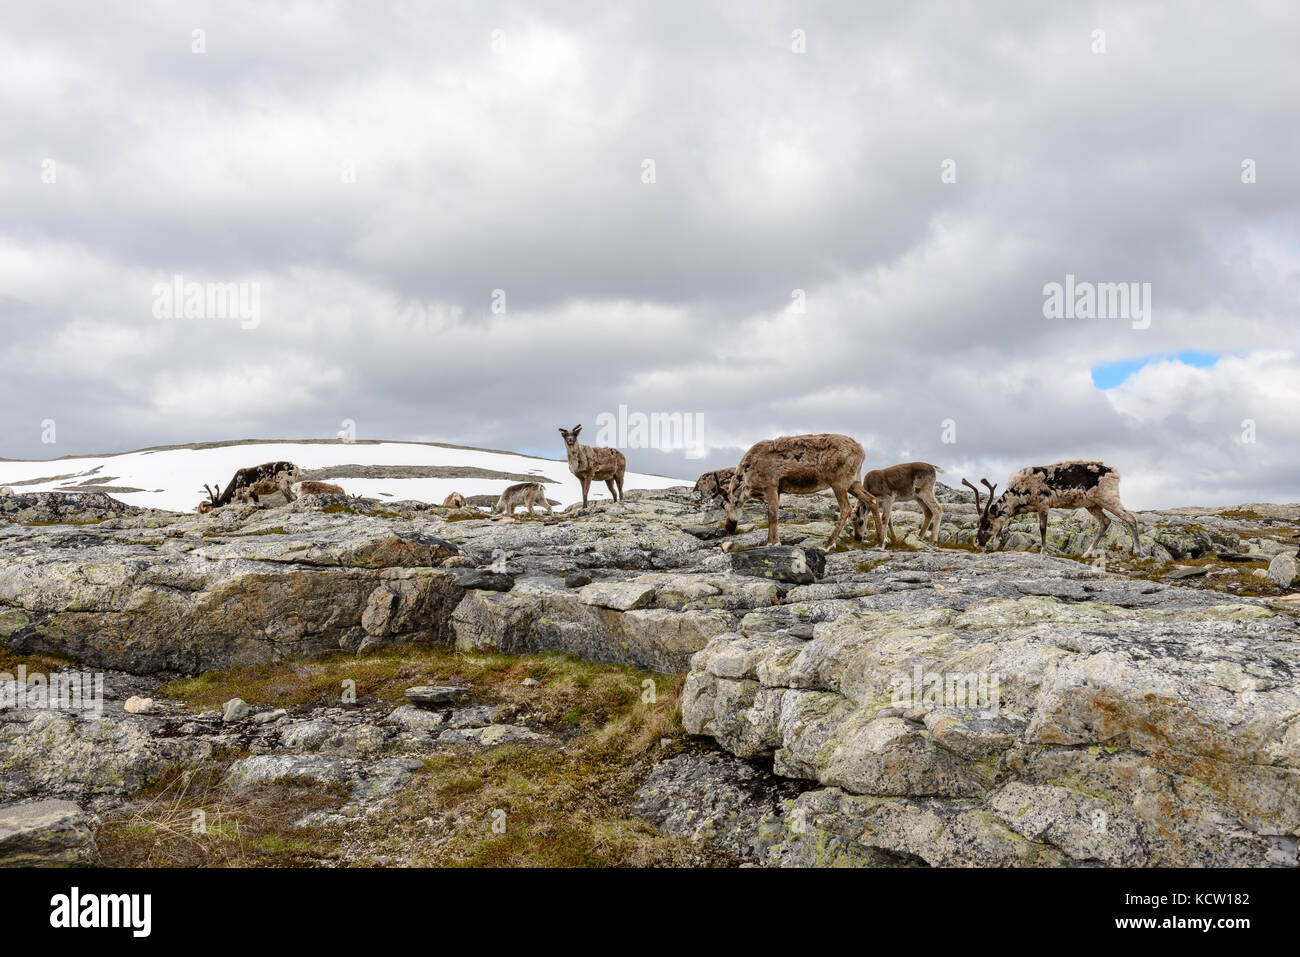 Picture is taken on a hike up Kjølen (mountain). Group of reindeer. July. Kvaløya, Tromsø, Norway. - Stock Image